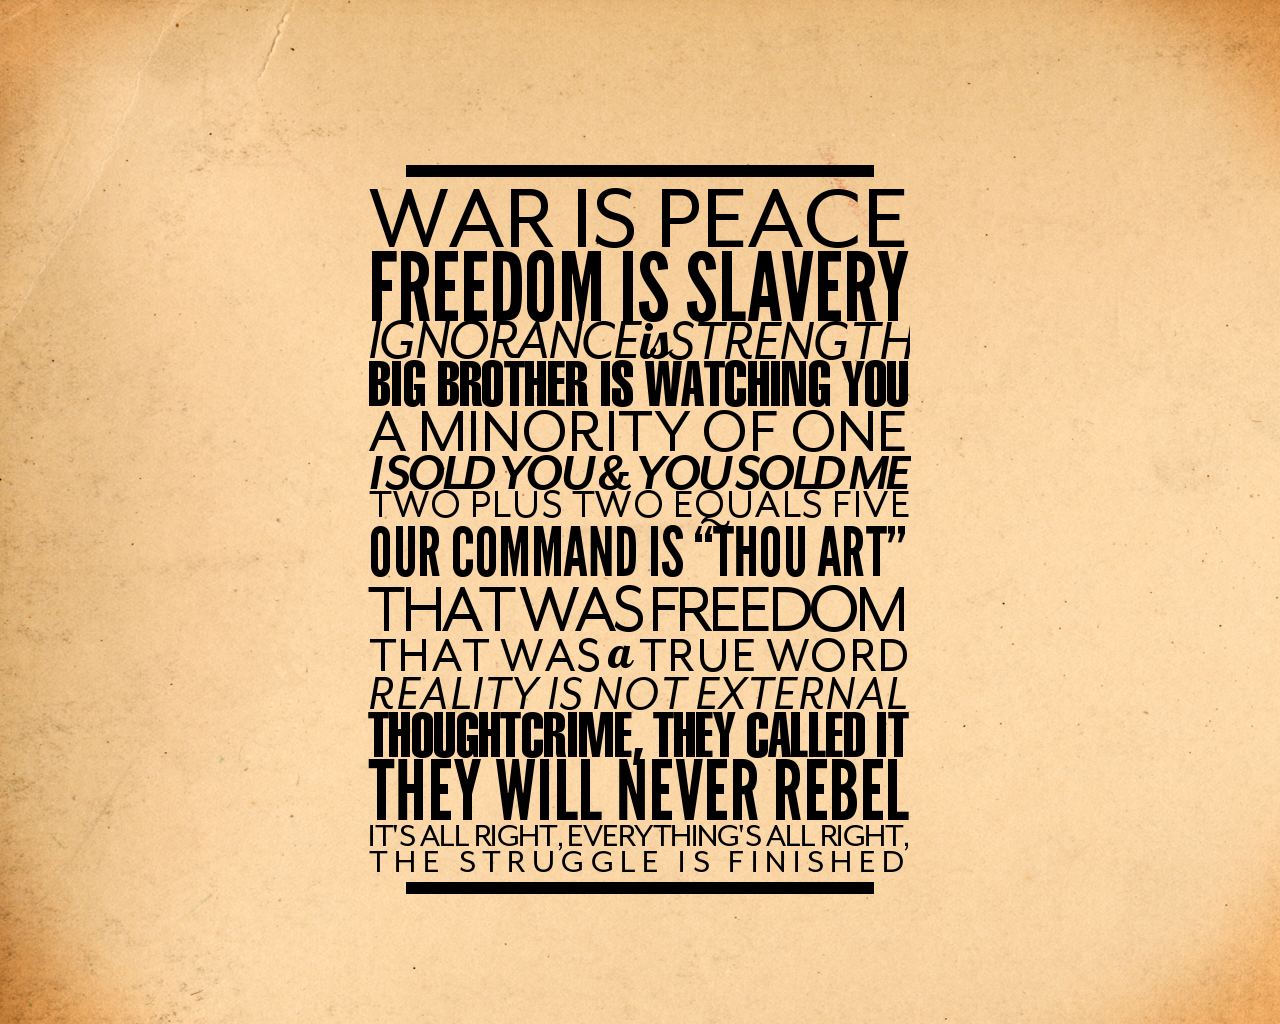 George Orwell 1984 Quotes George Orwell's Quotes Famous And Not Much  Sualci Quotes